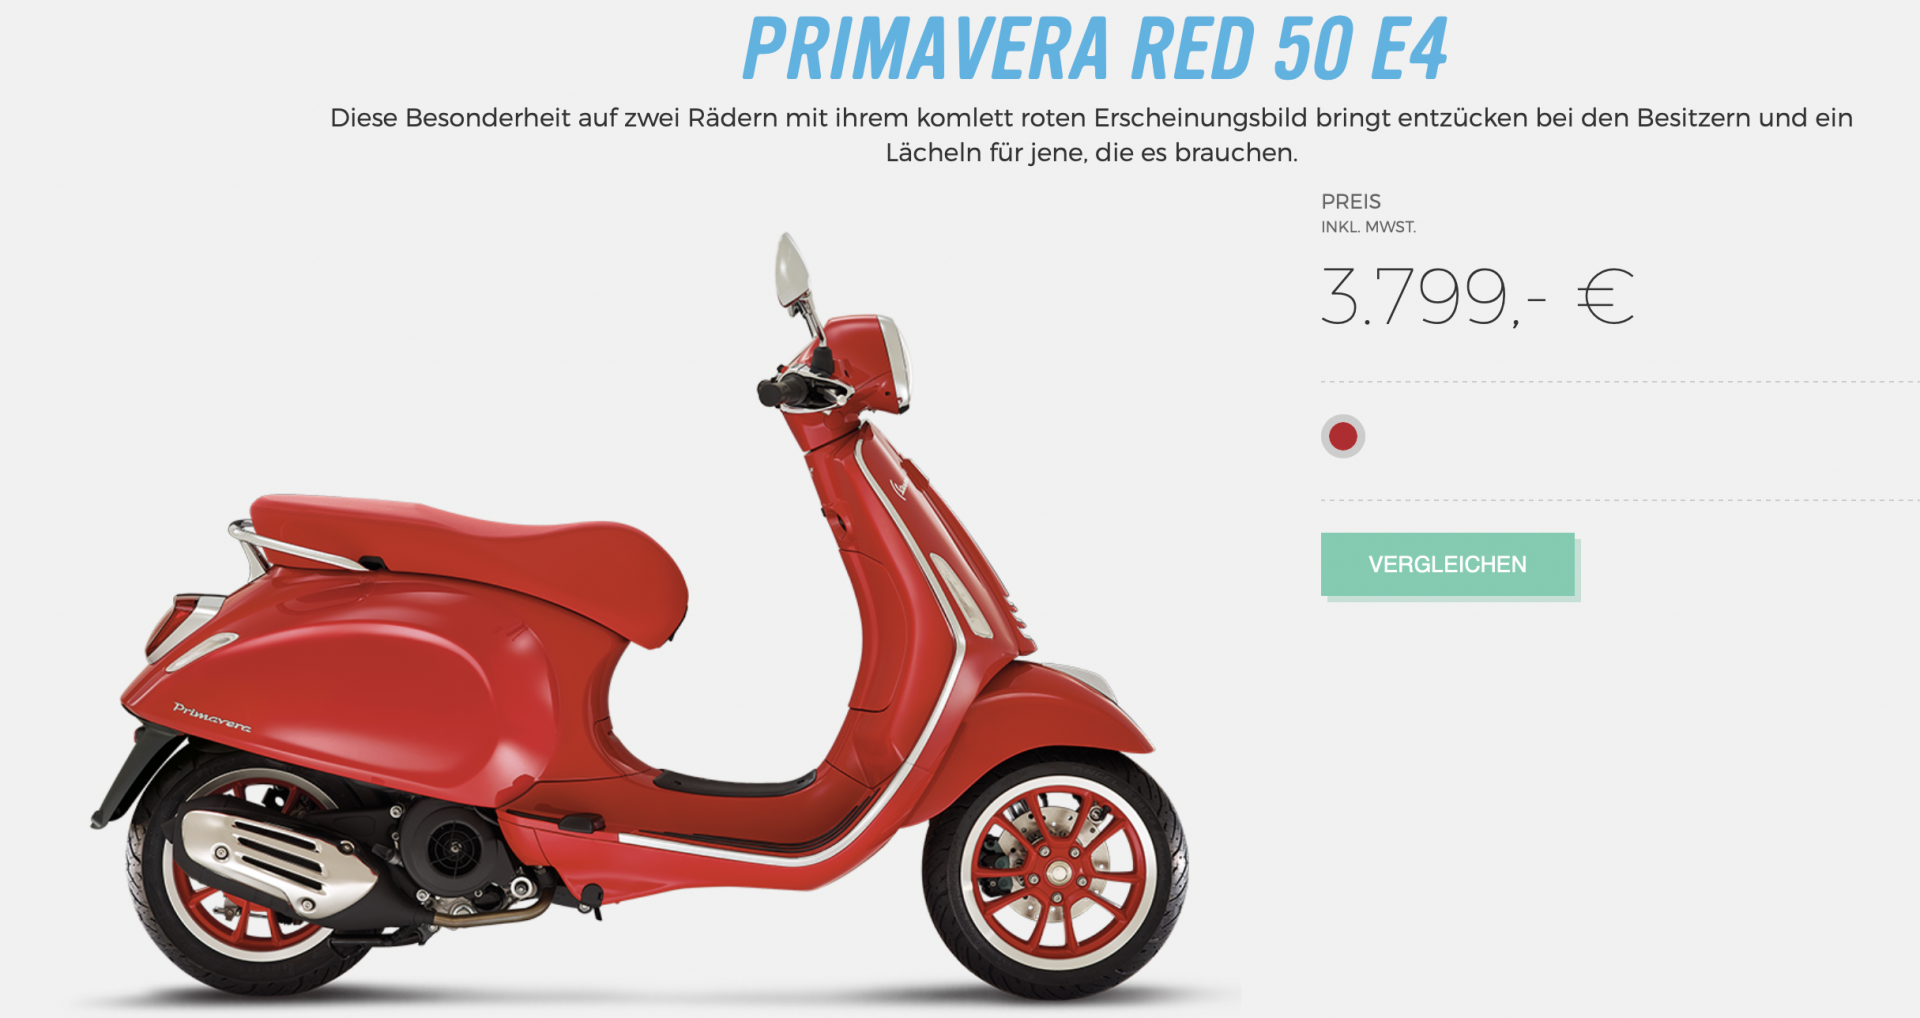 MOTEC Vespa Primavera Red 50 ccm Moped